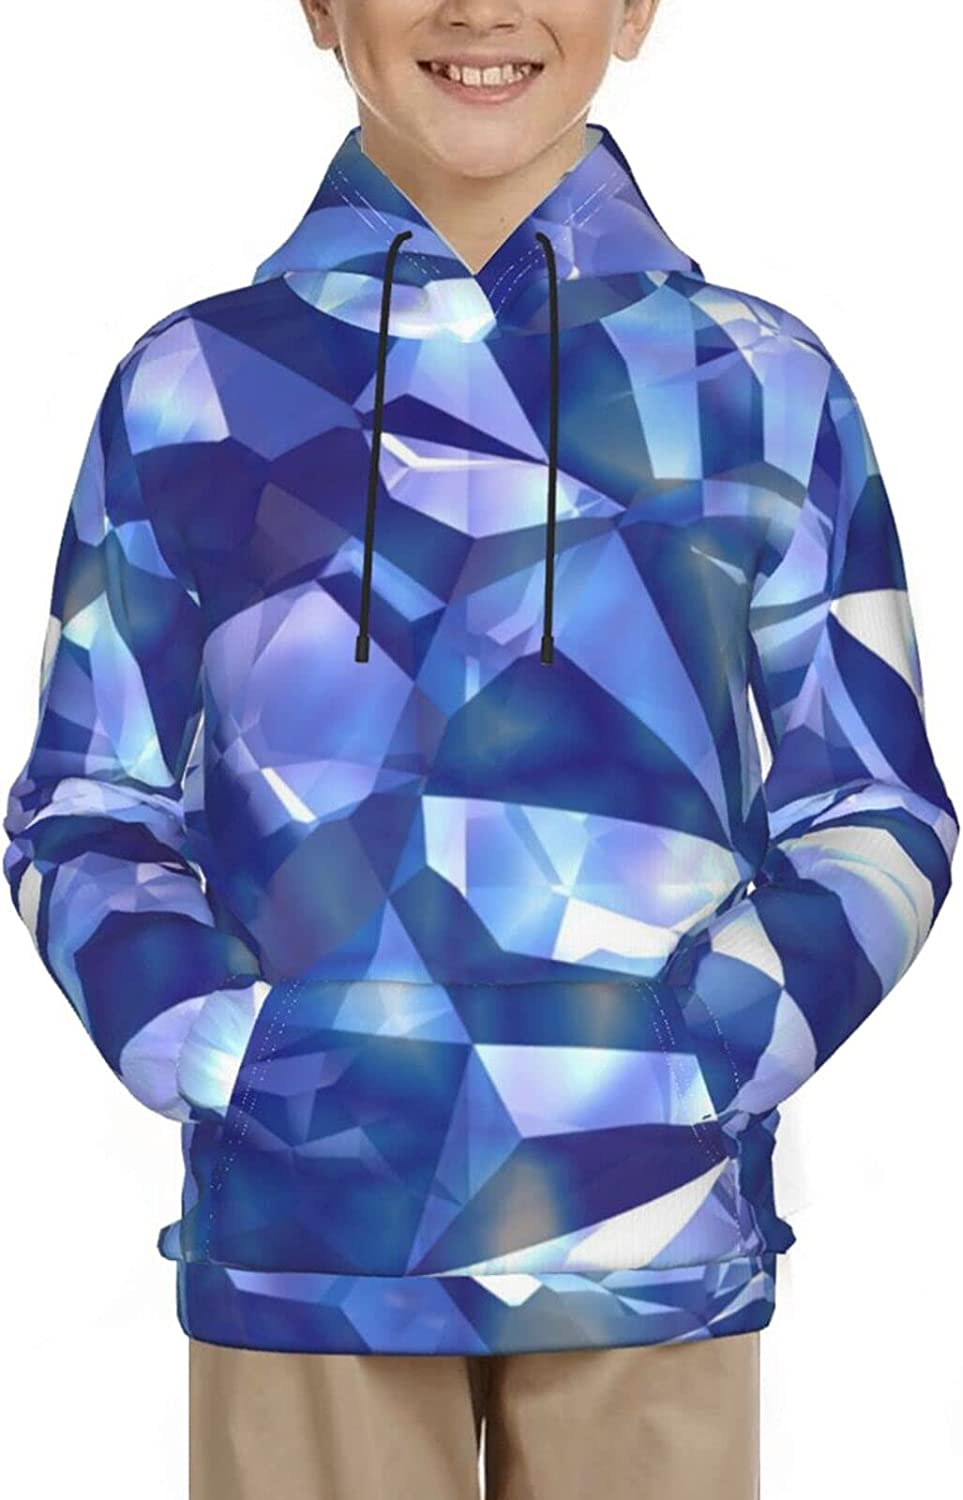 Blue Crystal Hoodies, Fashion 3D Print Sweatshirts, with Pocket Long Sleeves Pullover, for Boys Girls